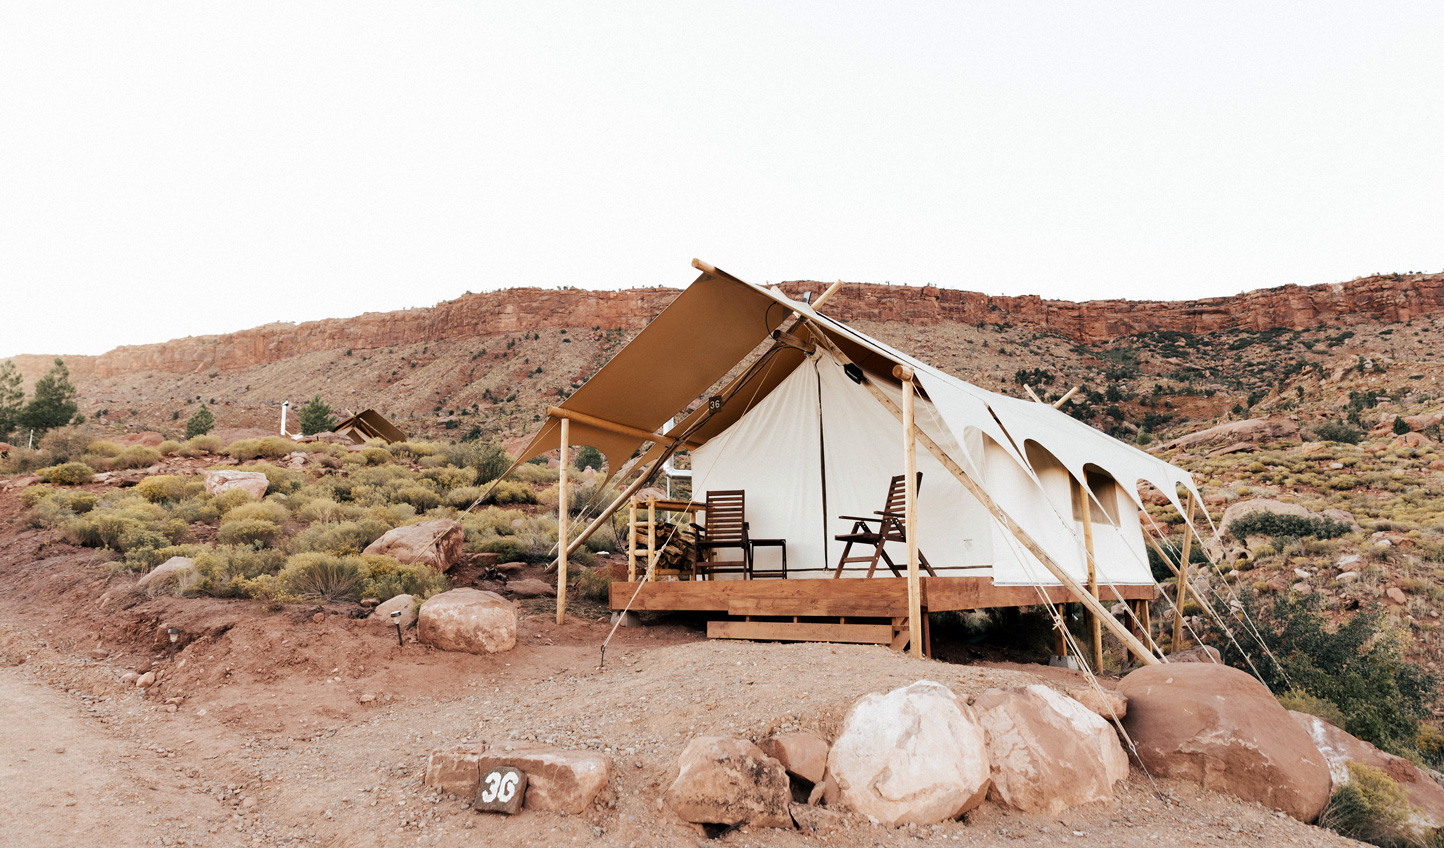 Sleep beneath the stars in your luxury tent at Under Canvas